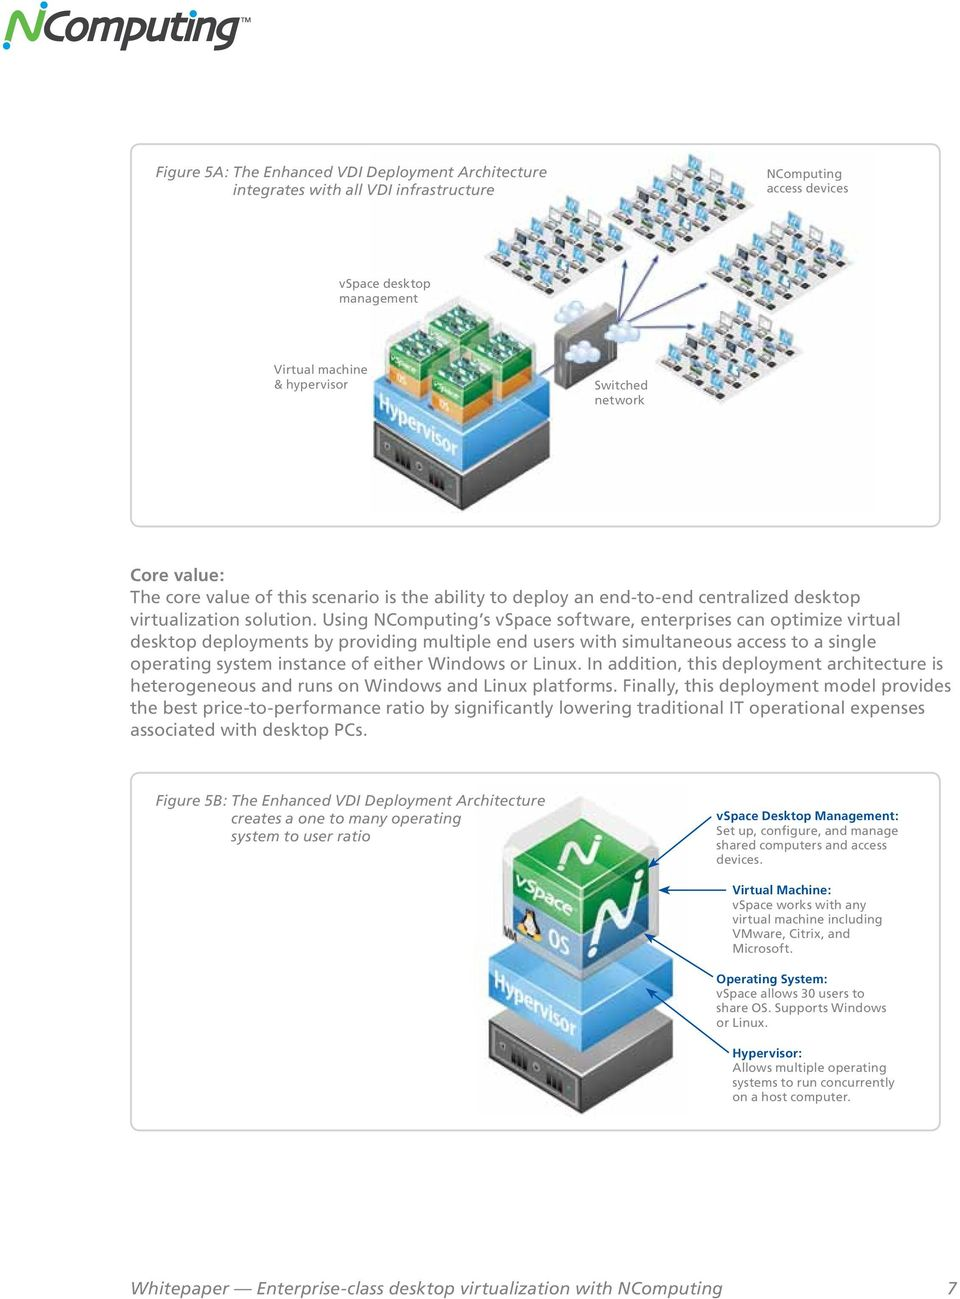 Using NComputing s vspace software, enterprises can optimize virtual desktop deployments by providing multiple end users with simultaneous access to a single operating system instance of either